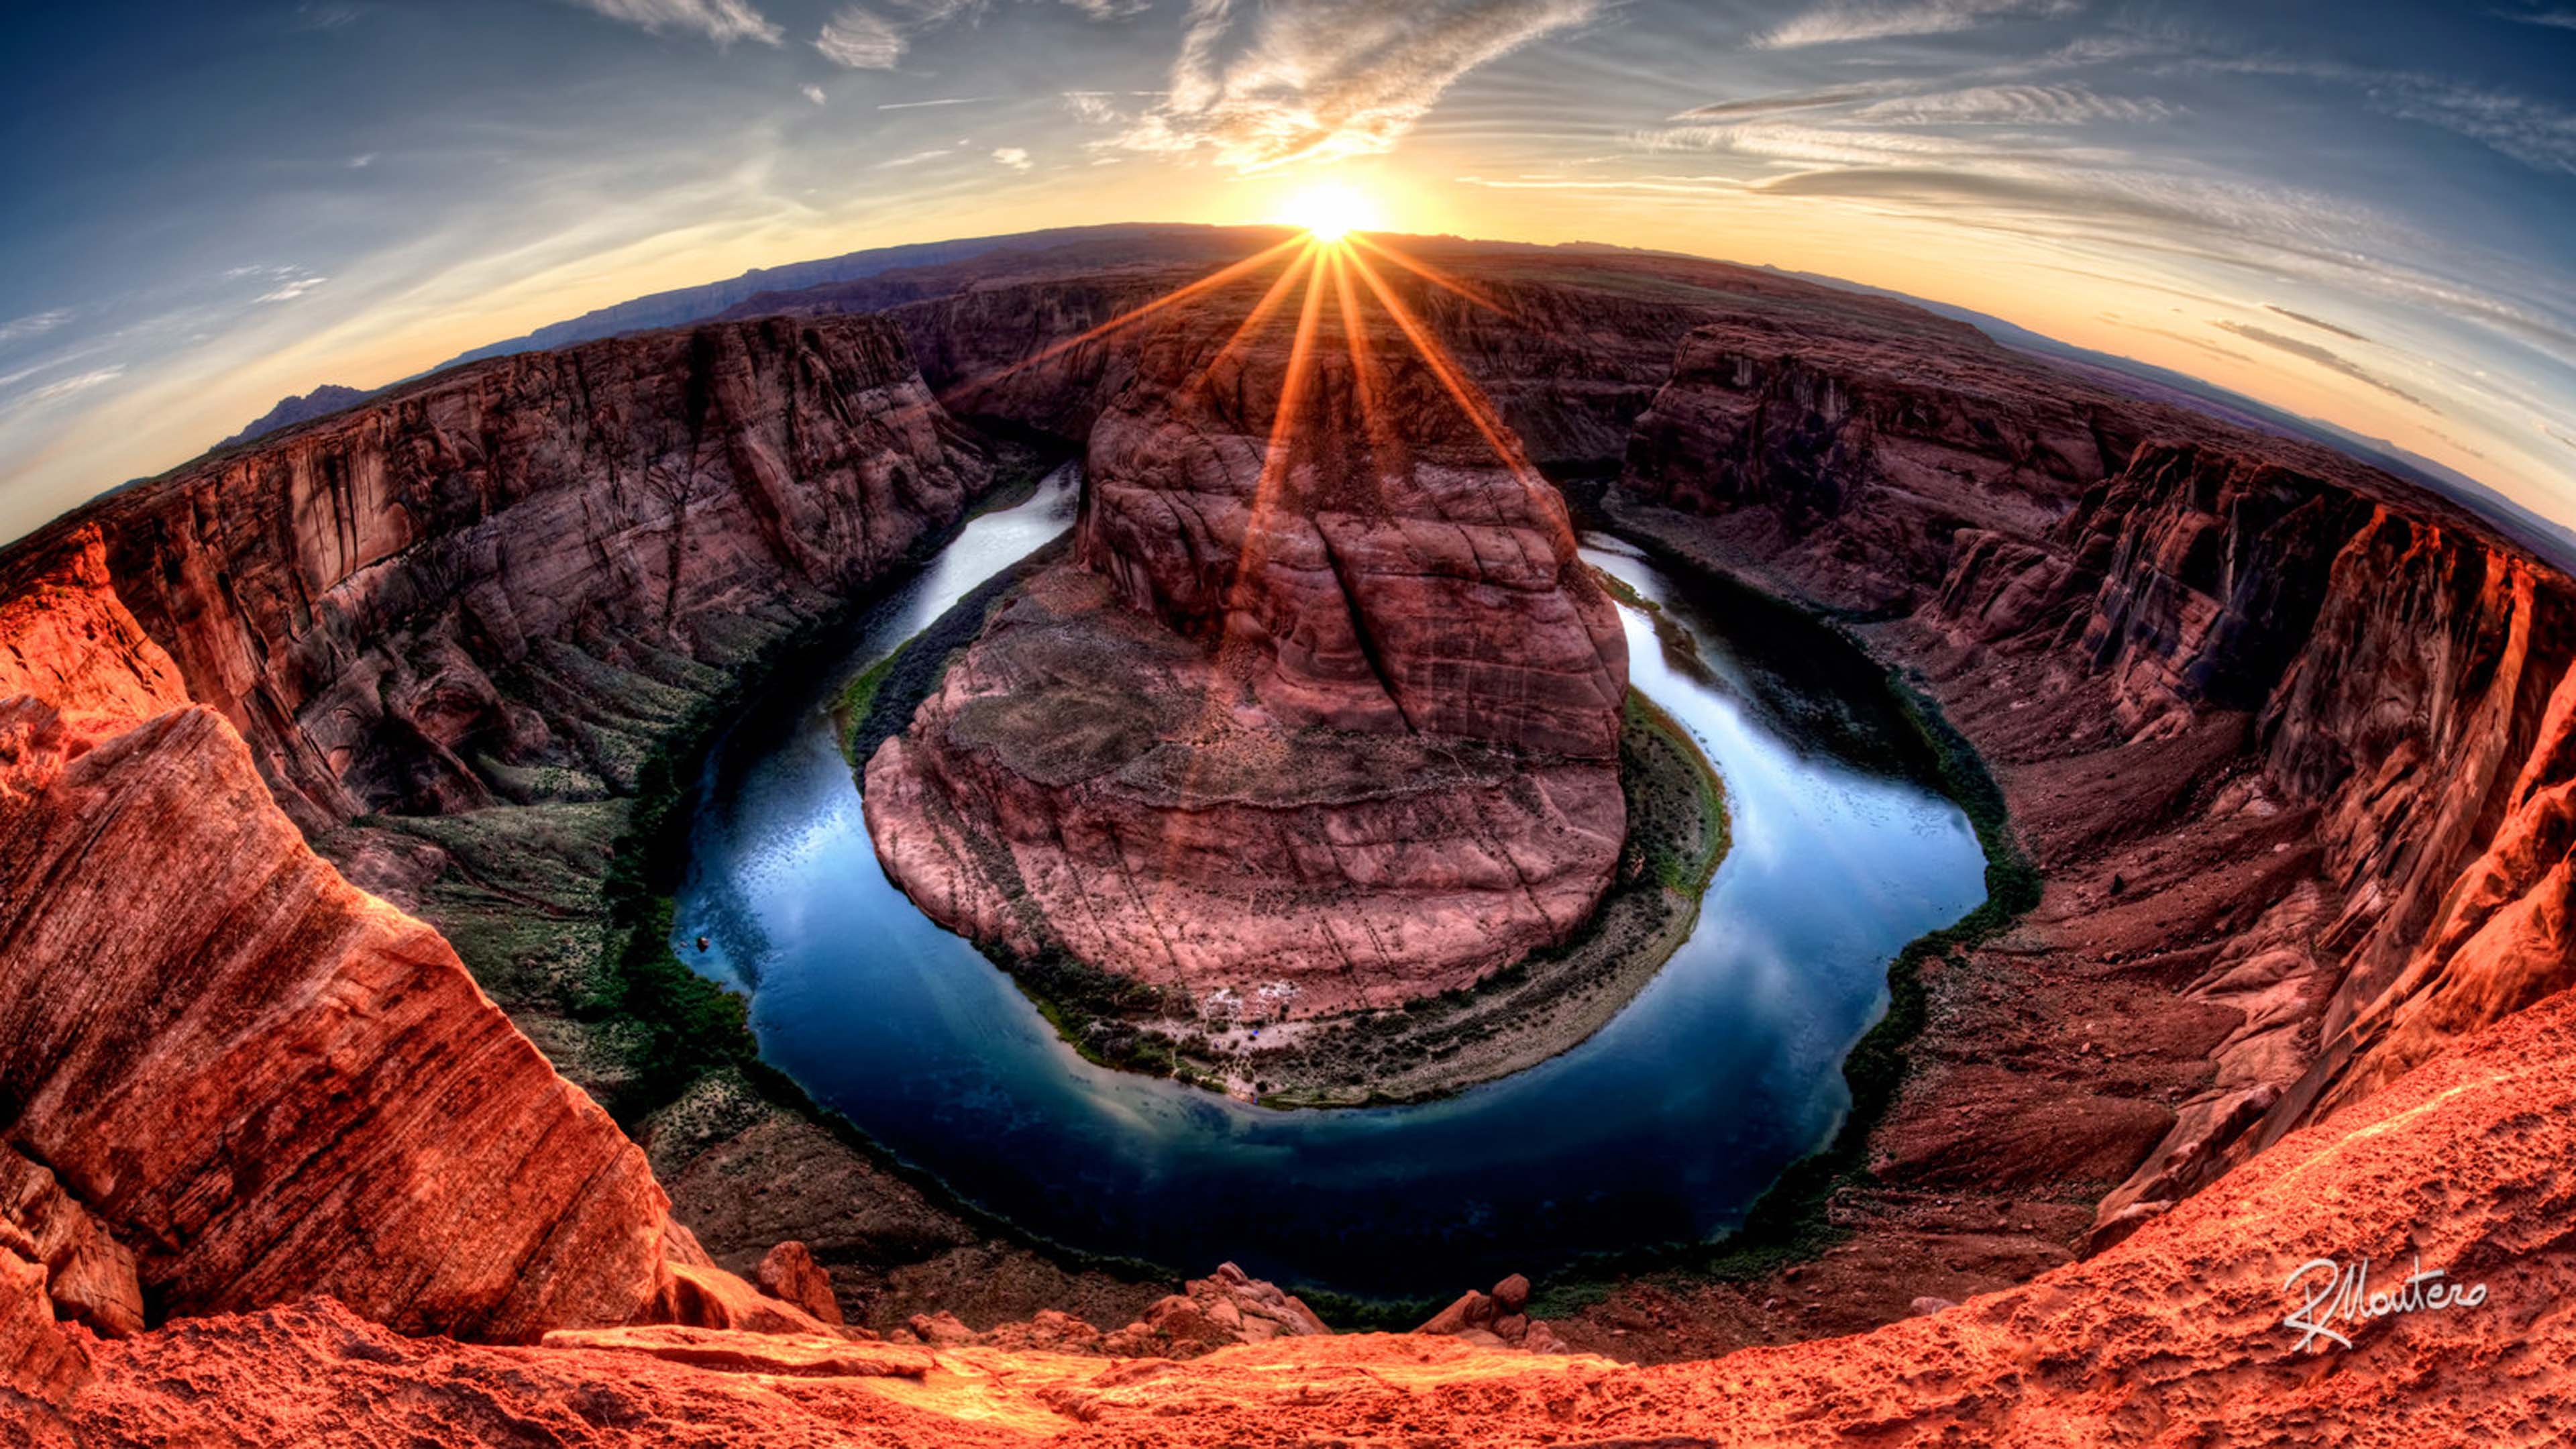 3d Fall Desktop Wallpaper Landscape Wallpaper Hd Curve Shooting The Horseshoe Bend